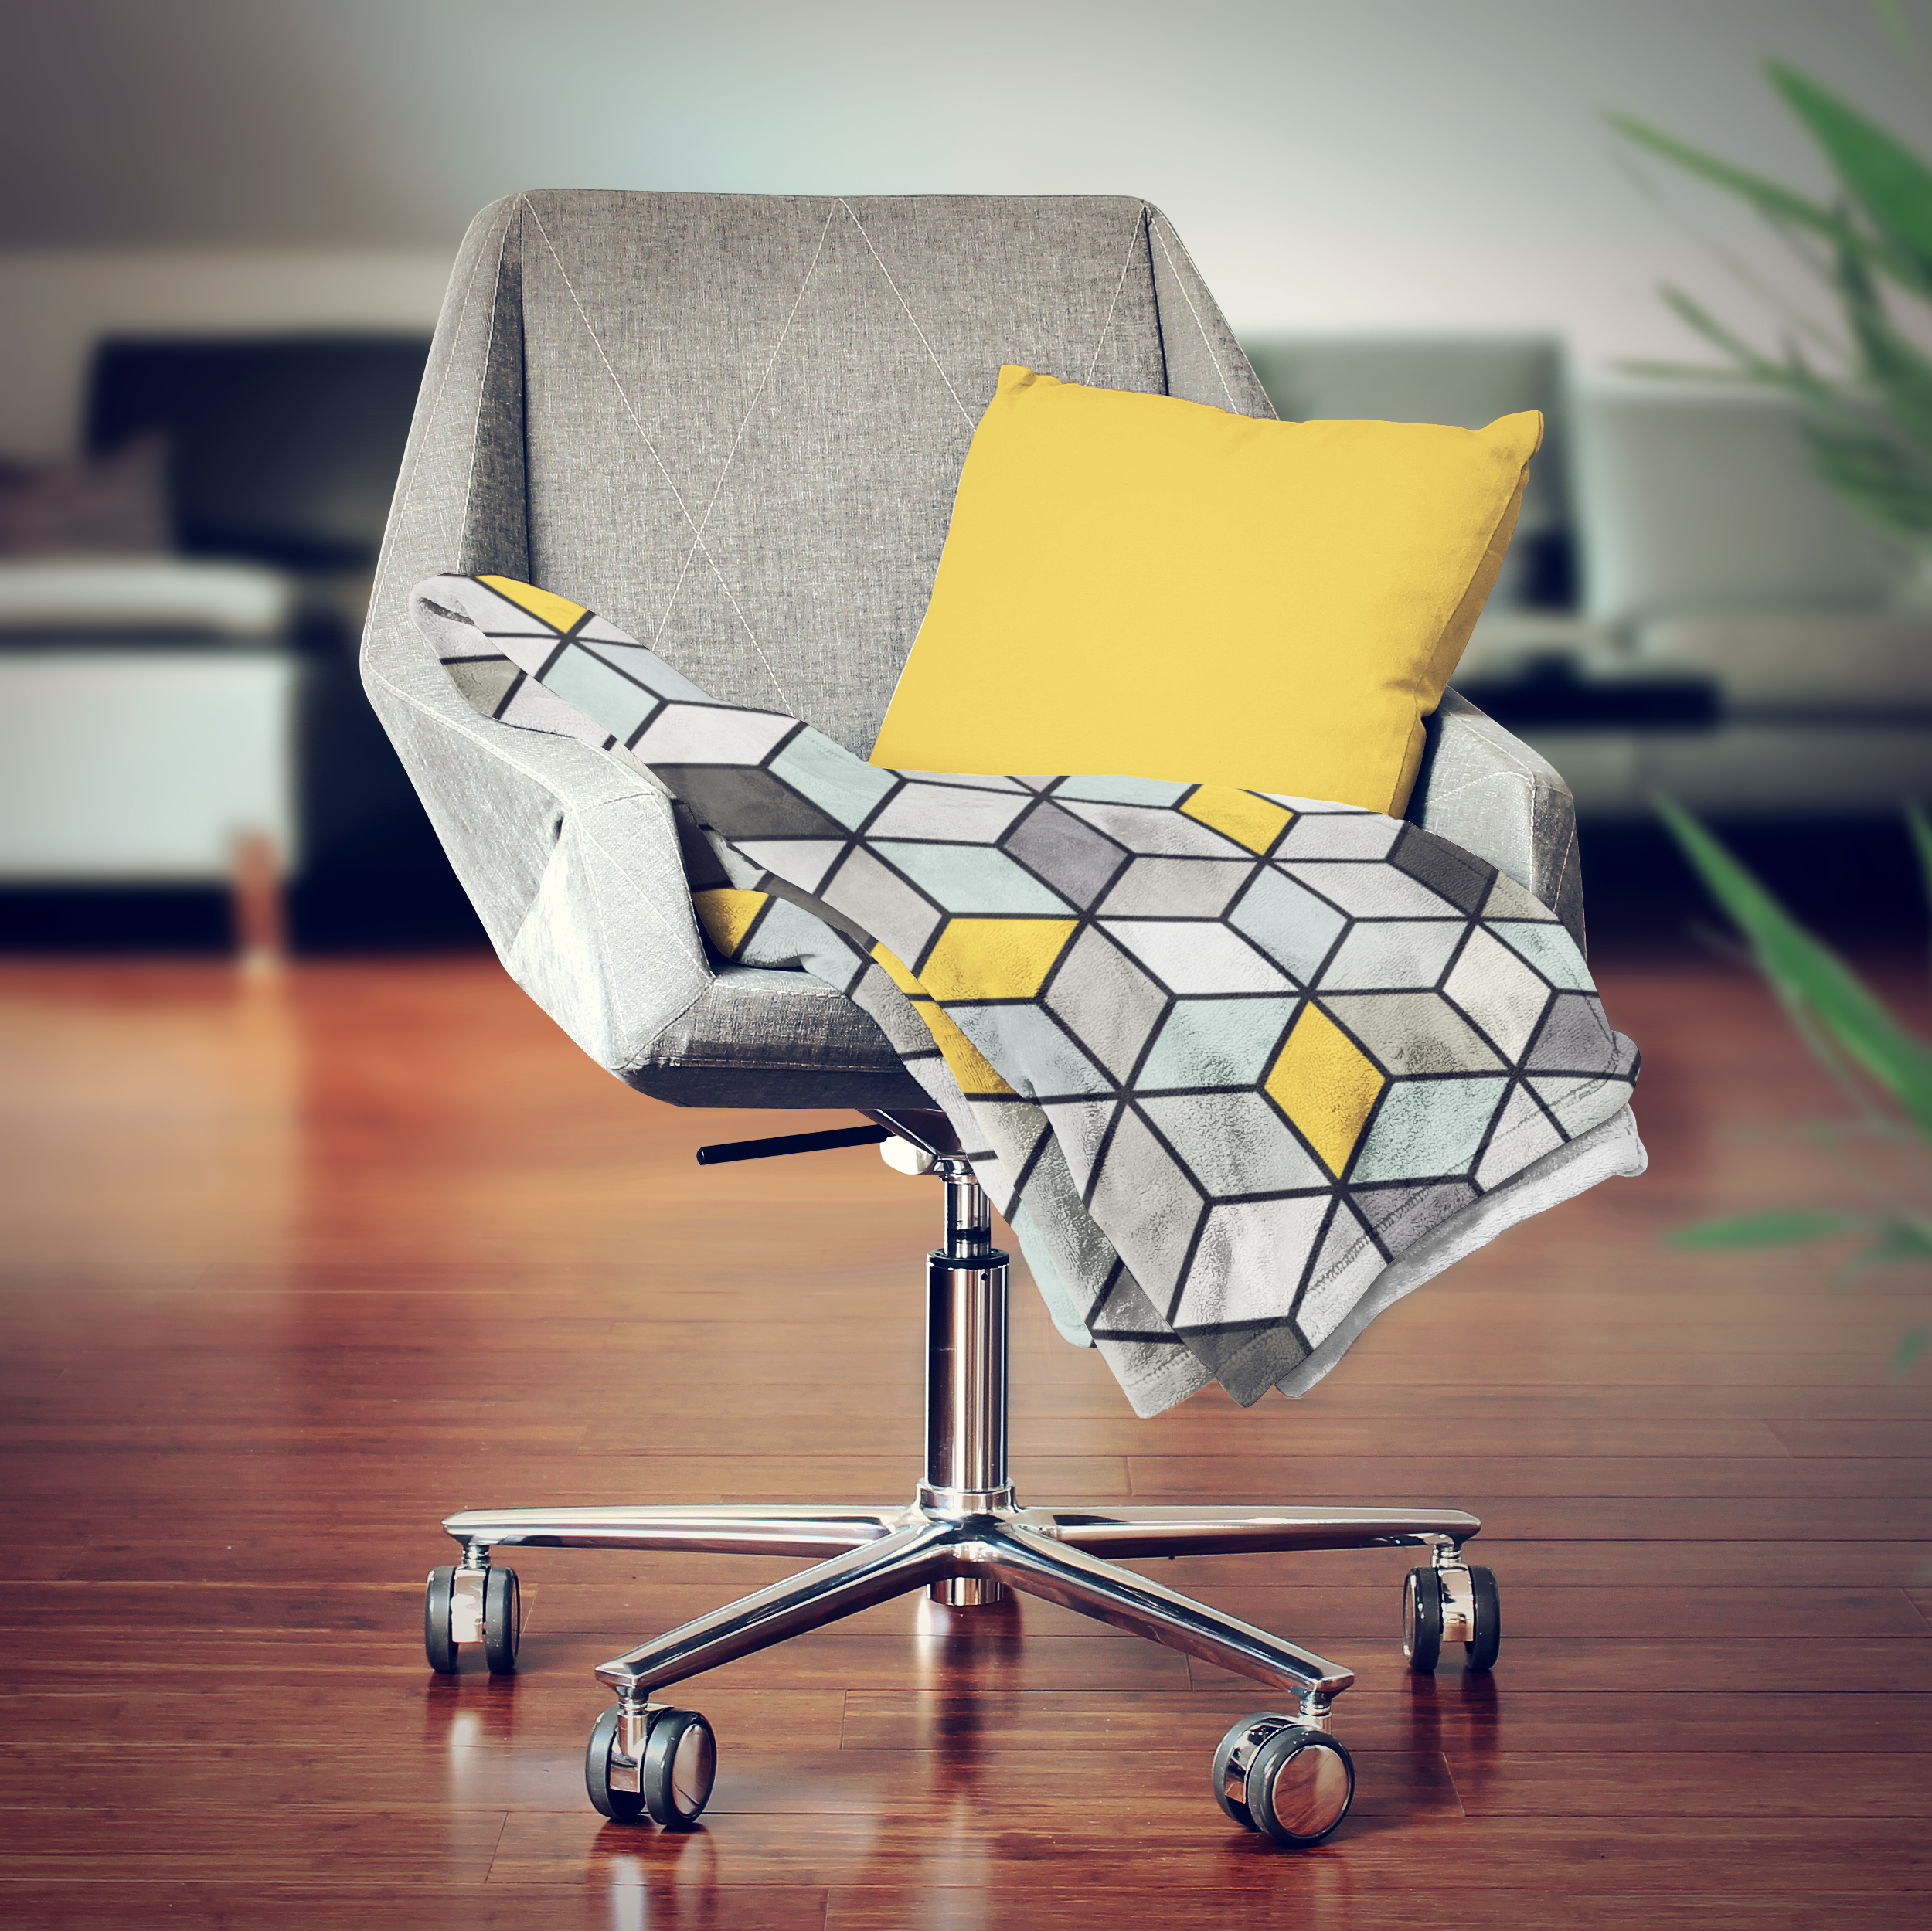 Colorful Concrete Cubes - Yellow ...